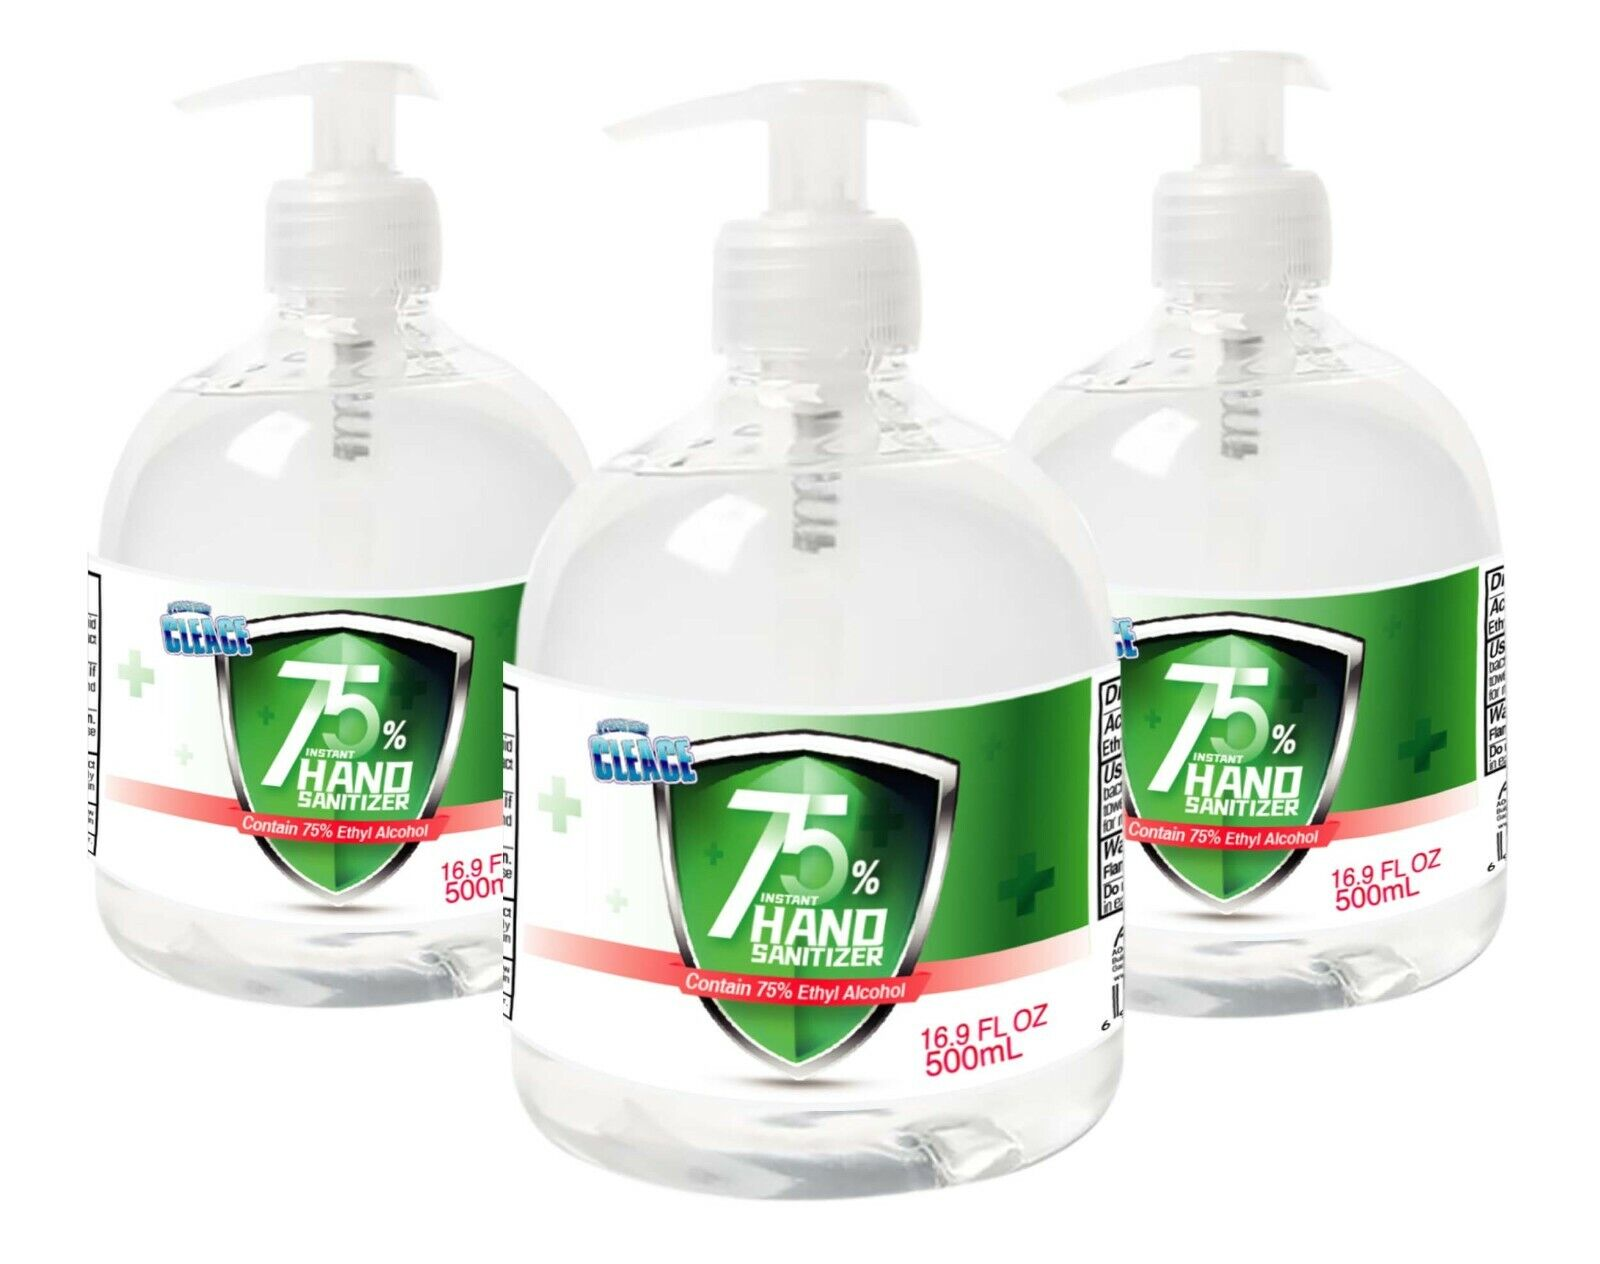 [3-PACK] Cleace Advanced 75% Alcohol Hand Sanitizer Gel, Large 16.9 Fl. Oz x 3 Hand Sanitizers